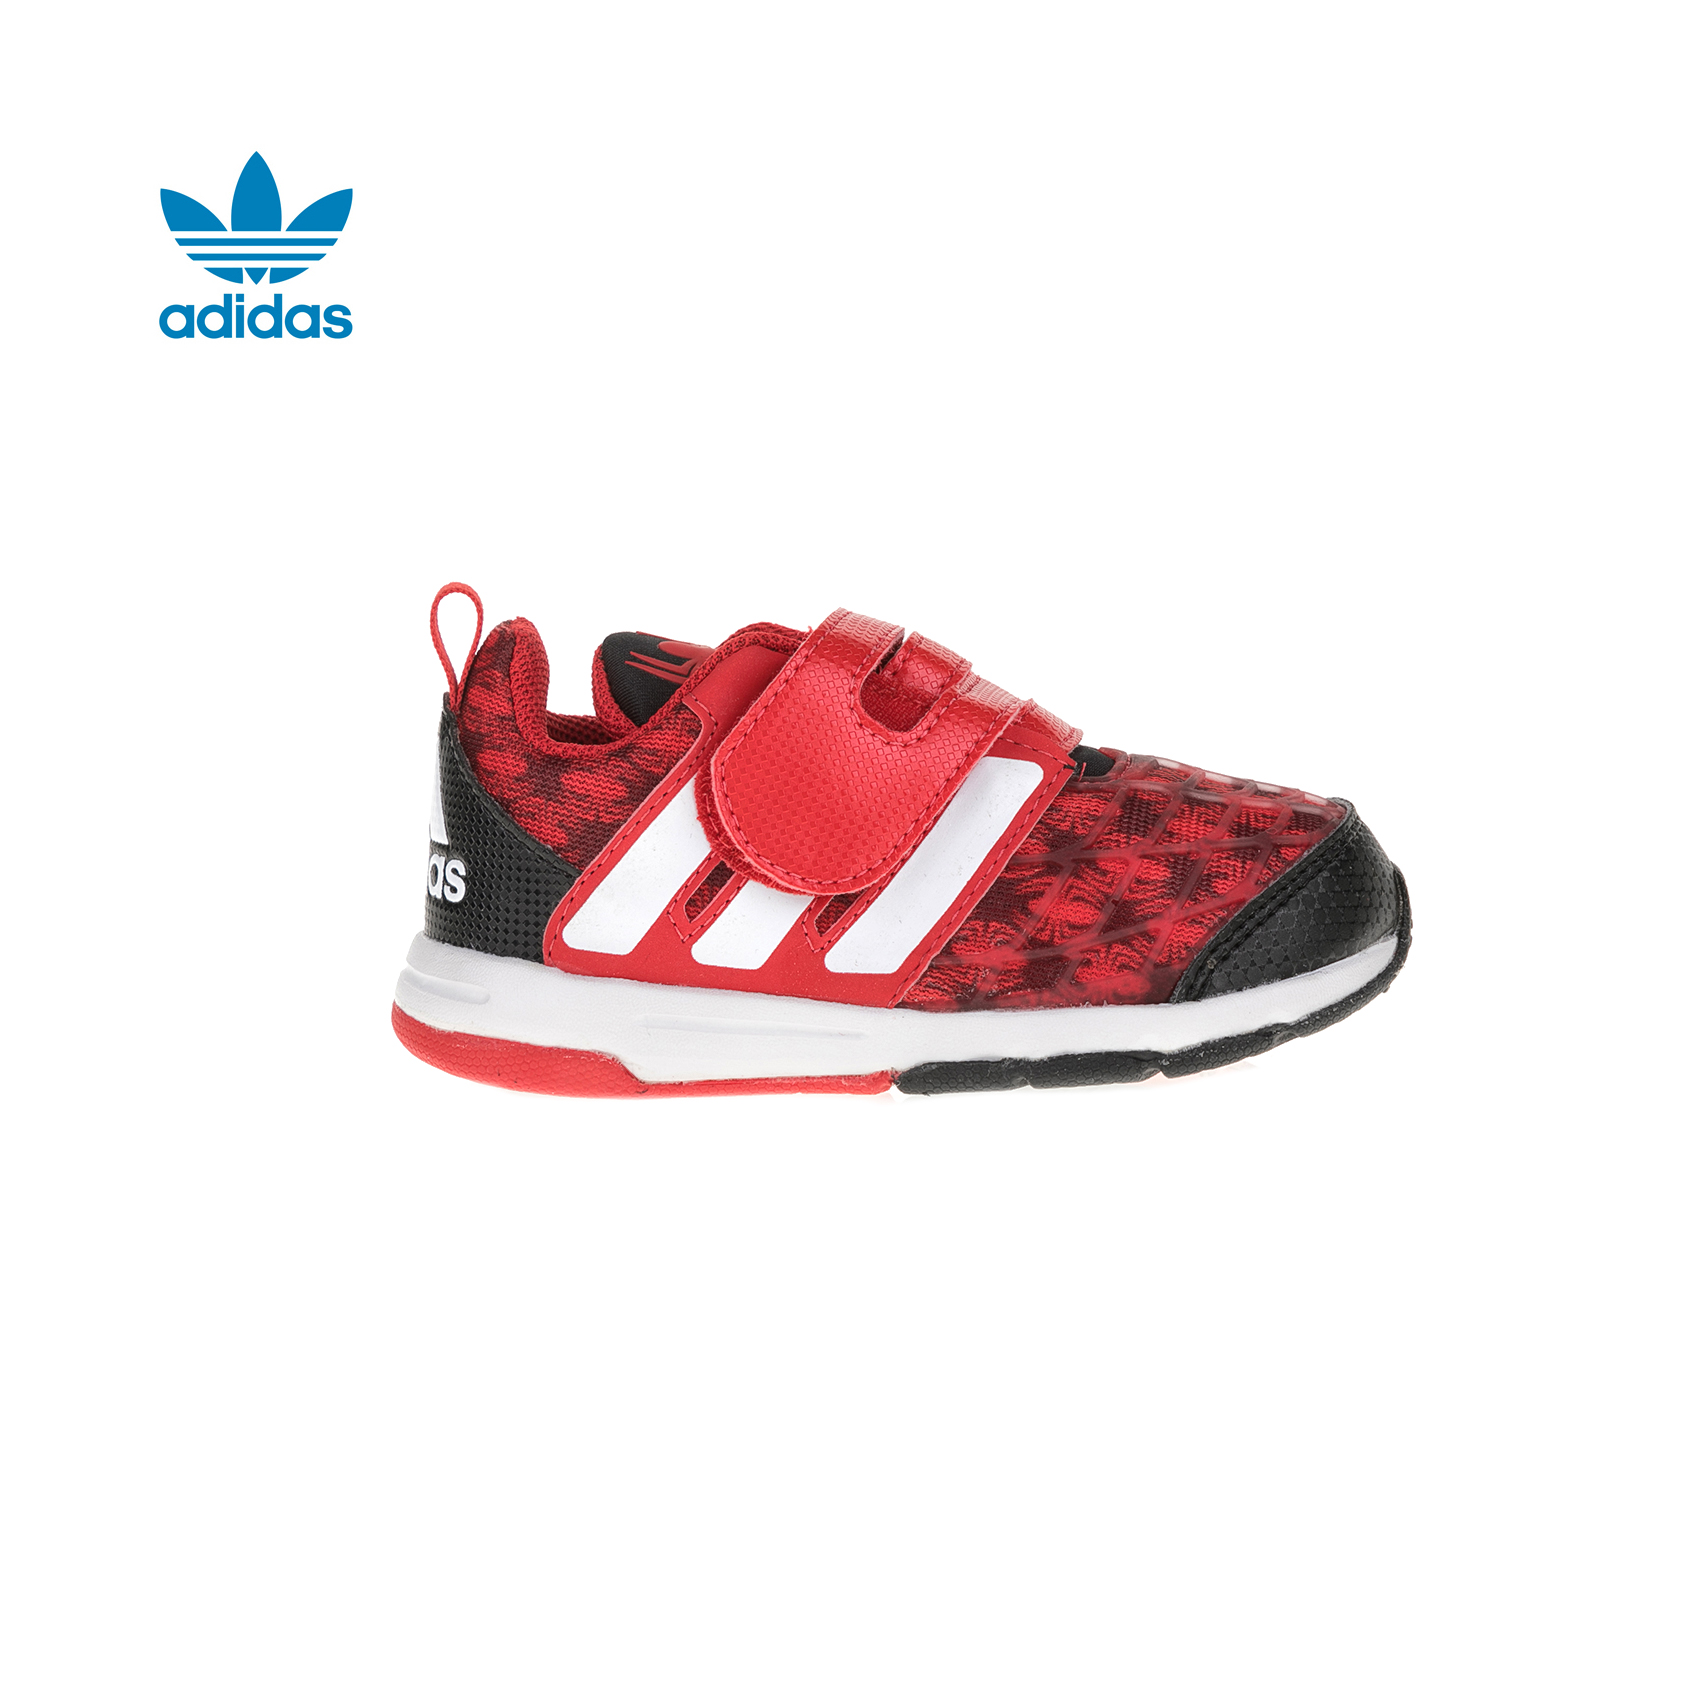 ADIDAS – BA9406 Marvel Spider-Man CF I RUNNING ΥΠΟΔΗΜΑ